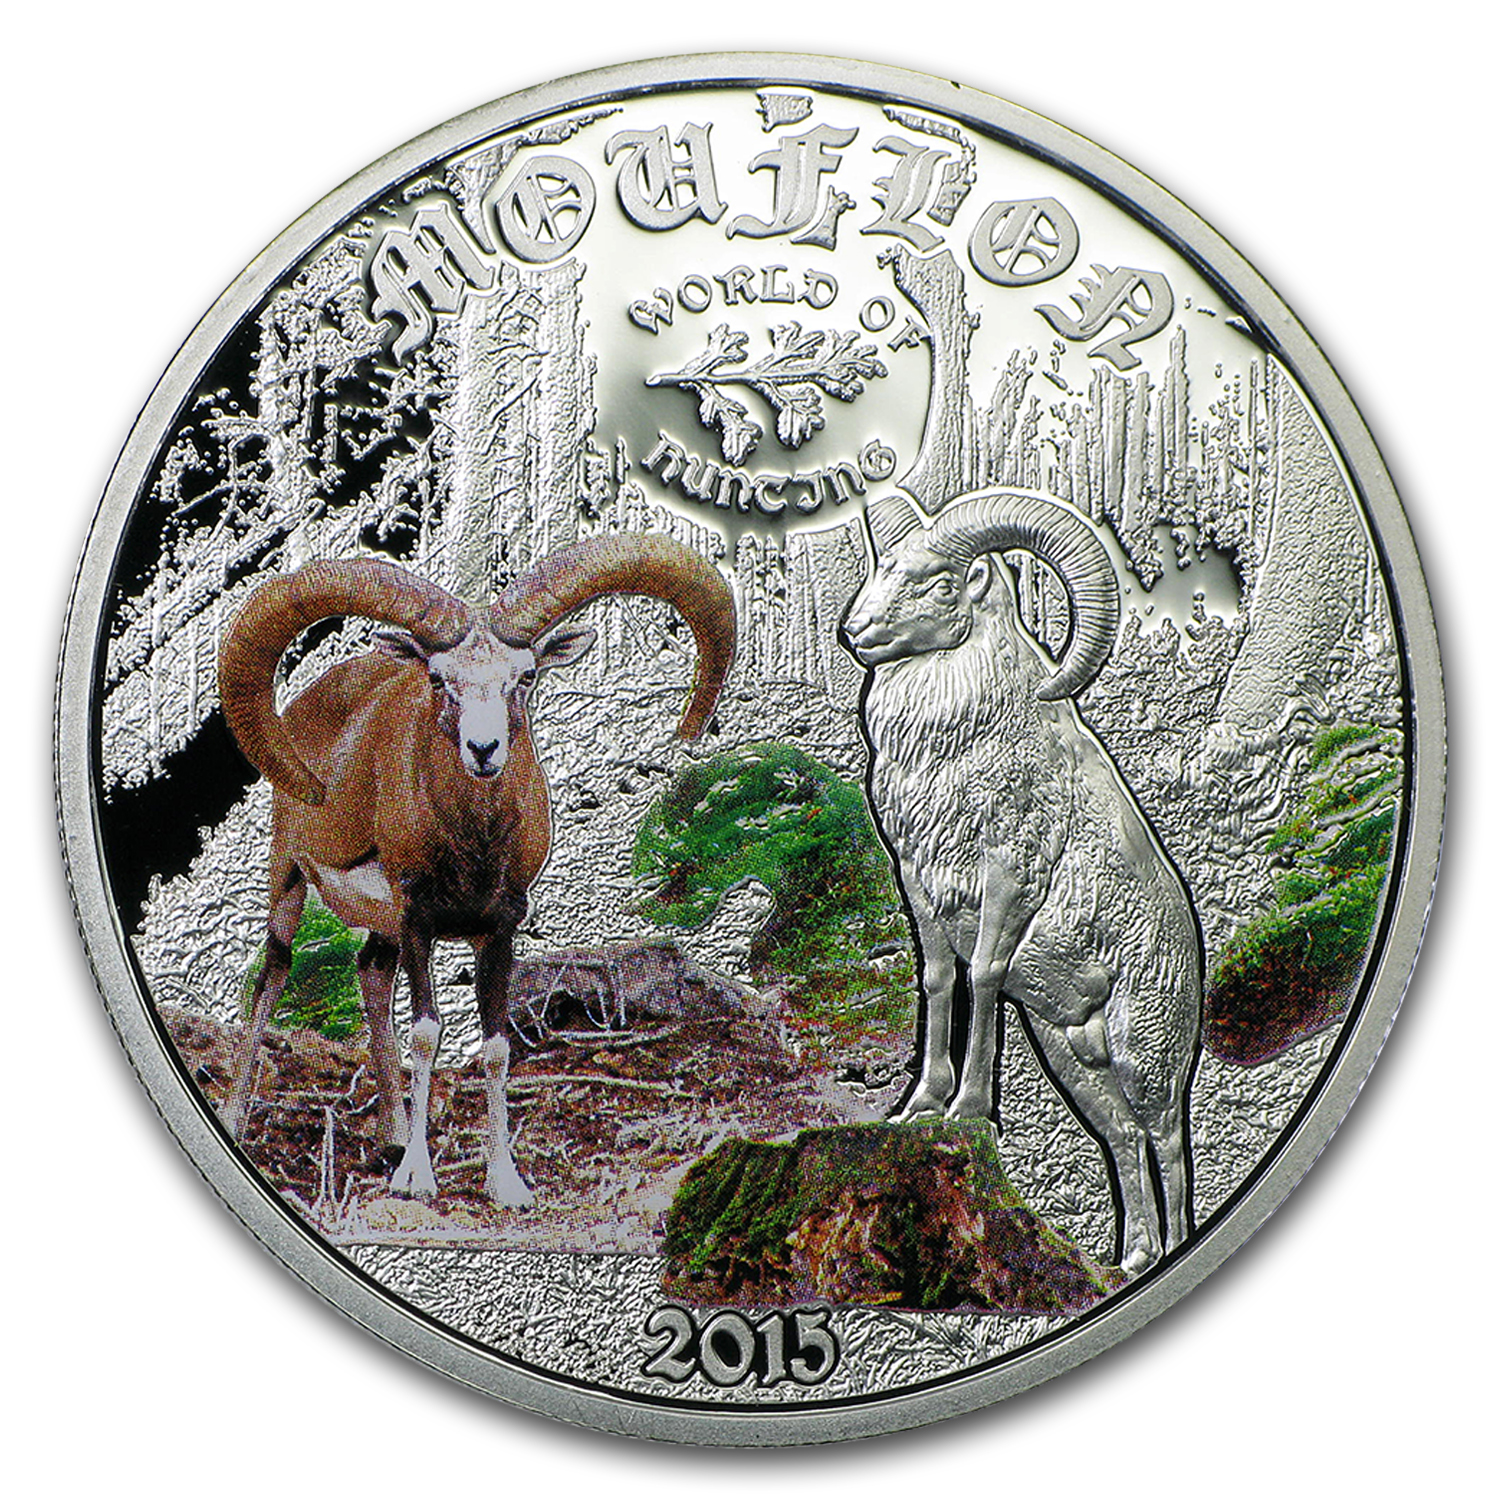 2015 Cook Islands 1/2 oz Silver World of Hunting Mouflon